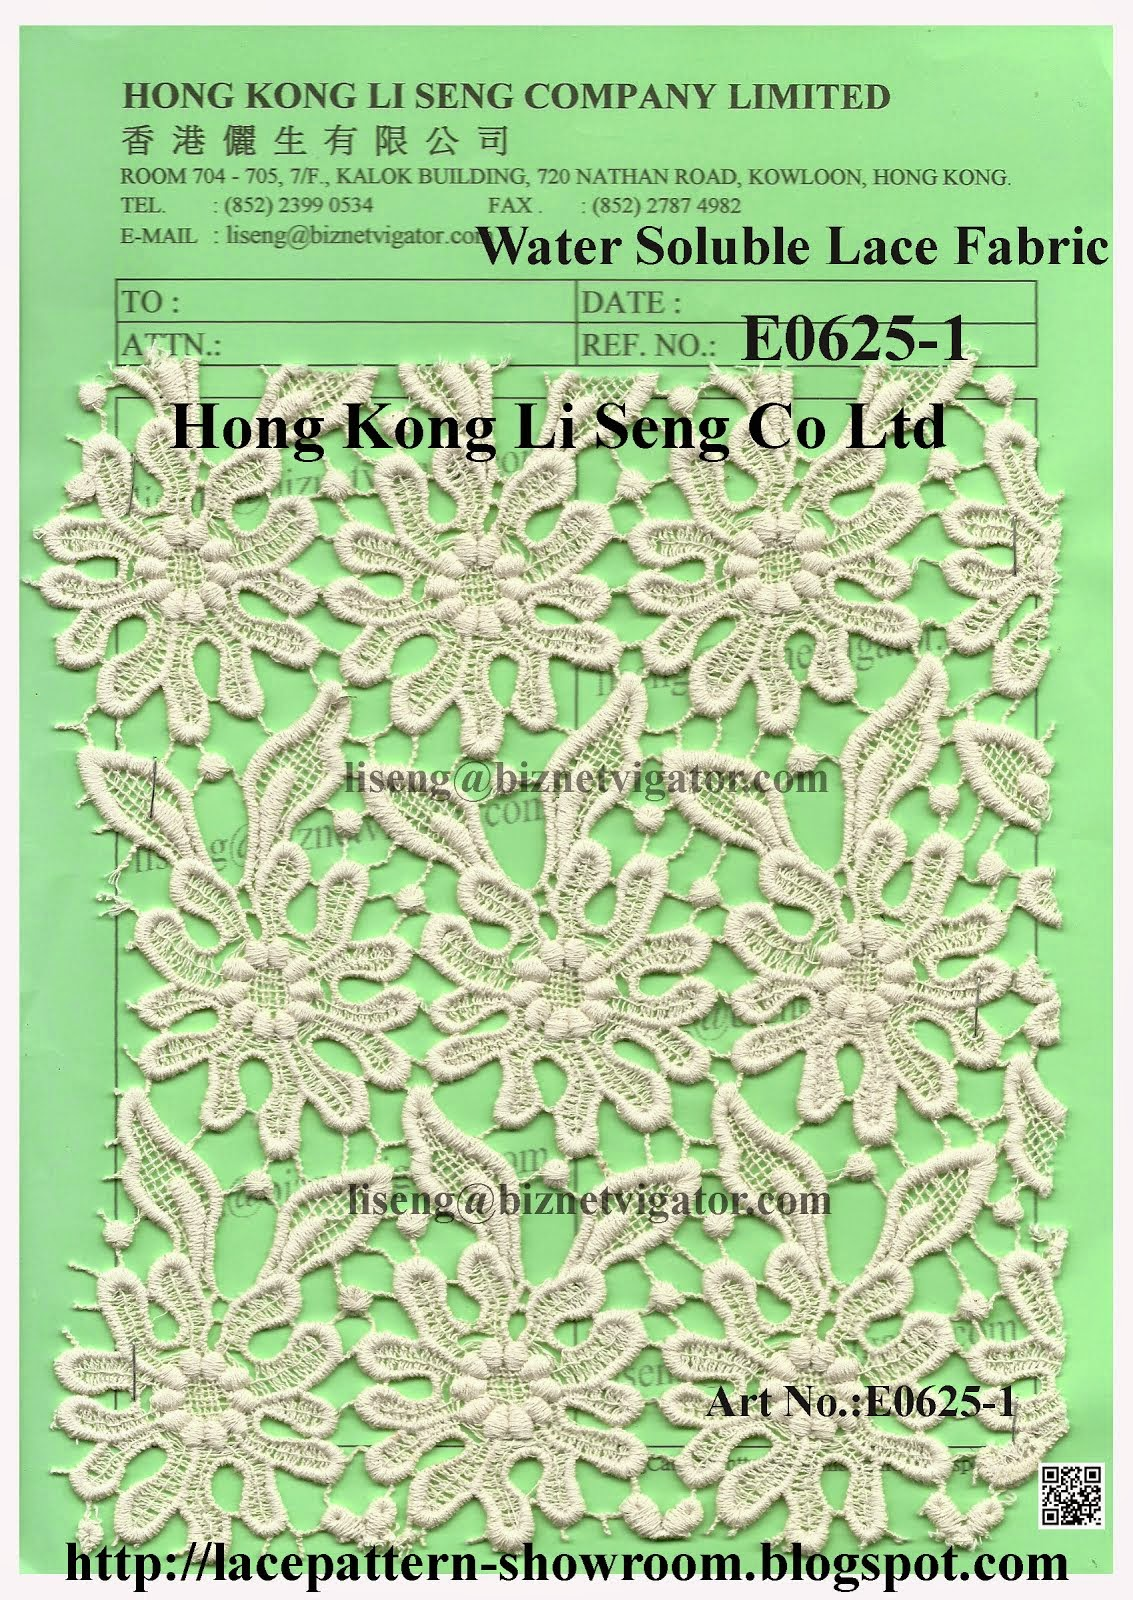 New Cotton Lace Fabric Pattern, lace patterns, lace patterns knitting,  lace pattern vector,